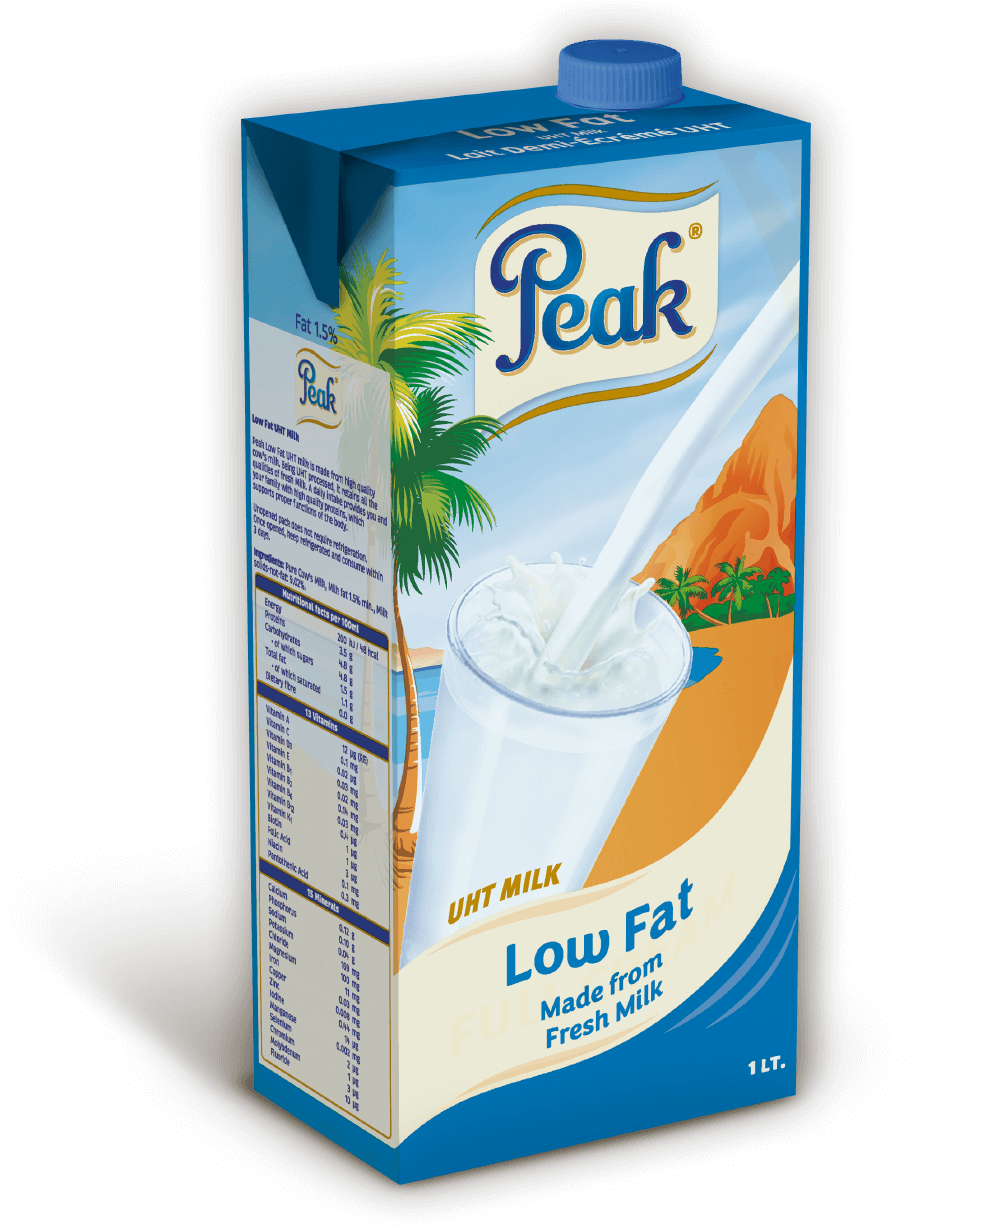 Peak UHT Milk Low Fat